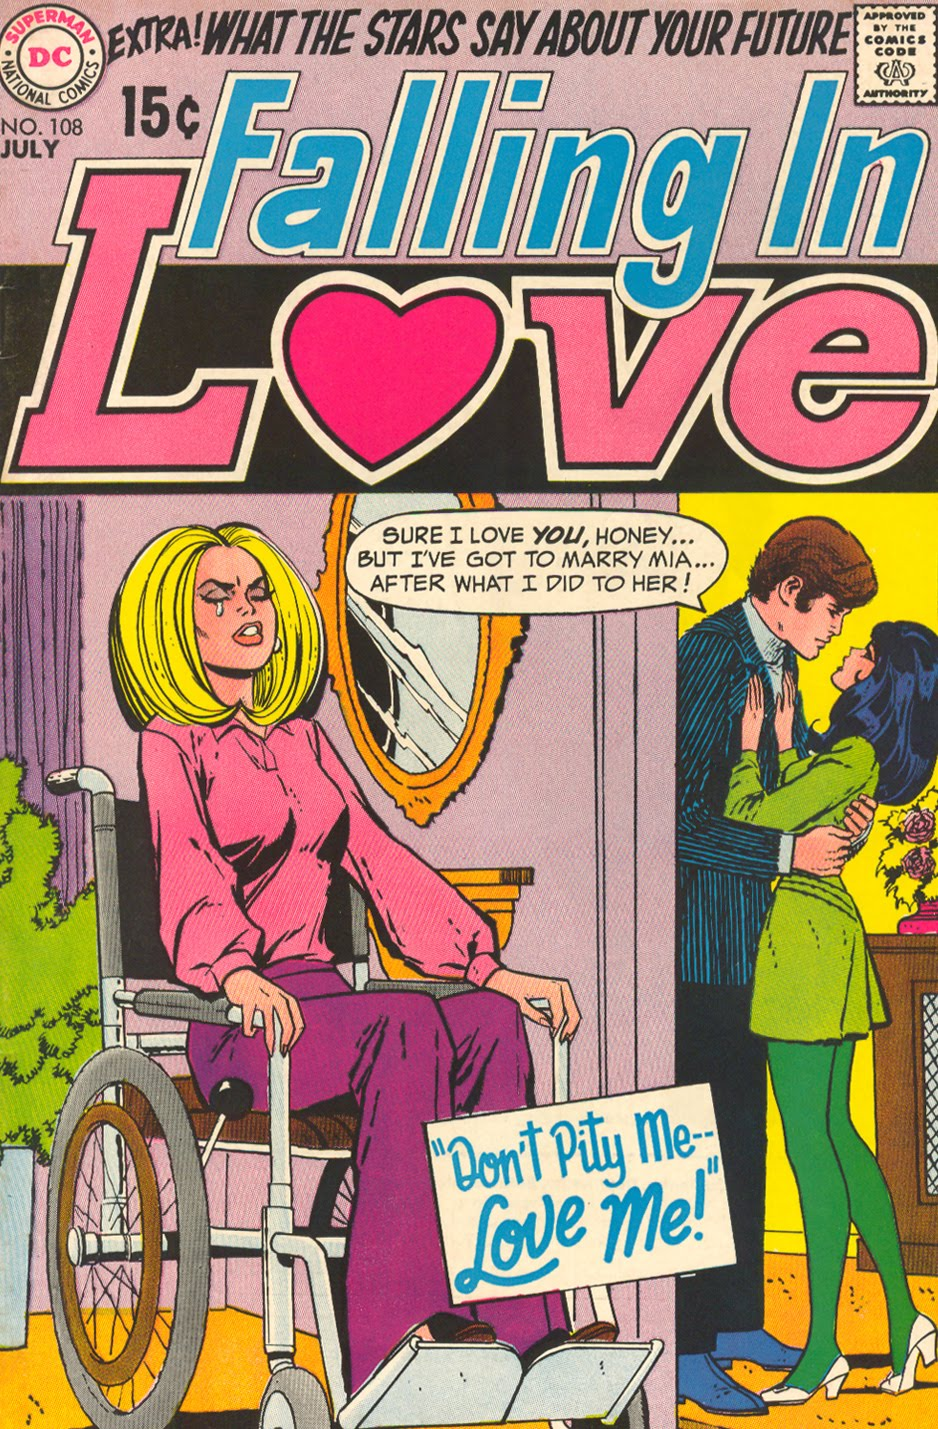 "DIAGNOSIS: Paralysis from car accident ""Don't Pity Me -- Love Me!""  Falling in Love  #108 (July 1969) Cover pencils by Ric Estrada, inks by Vince Colletta"